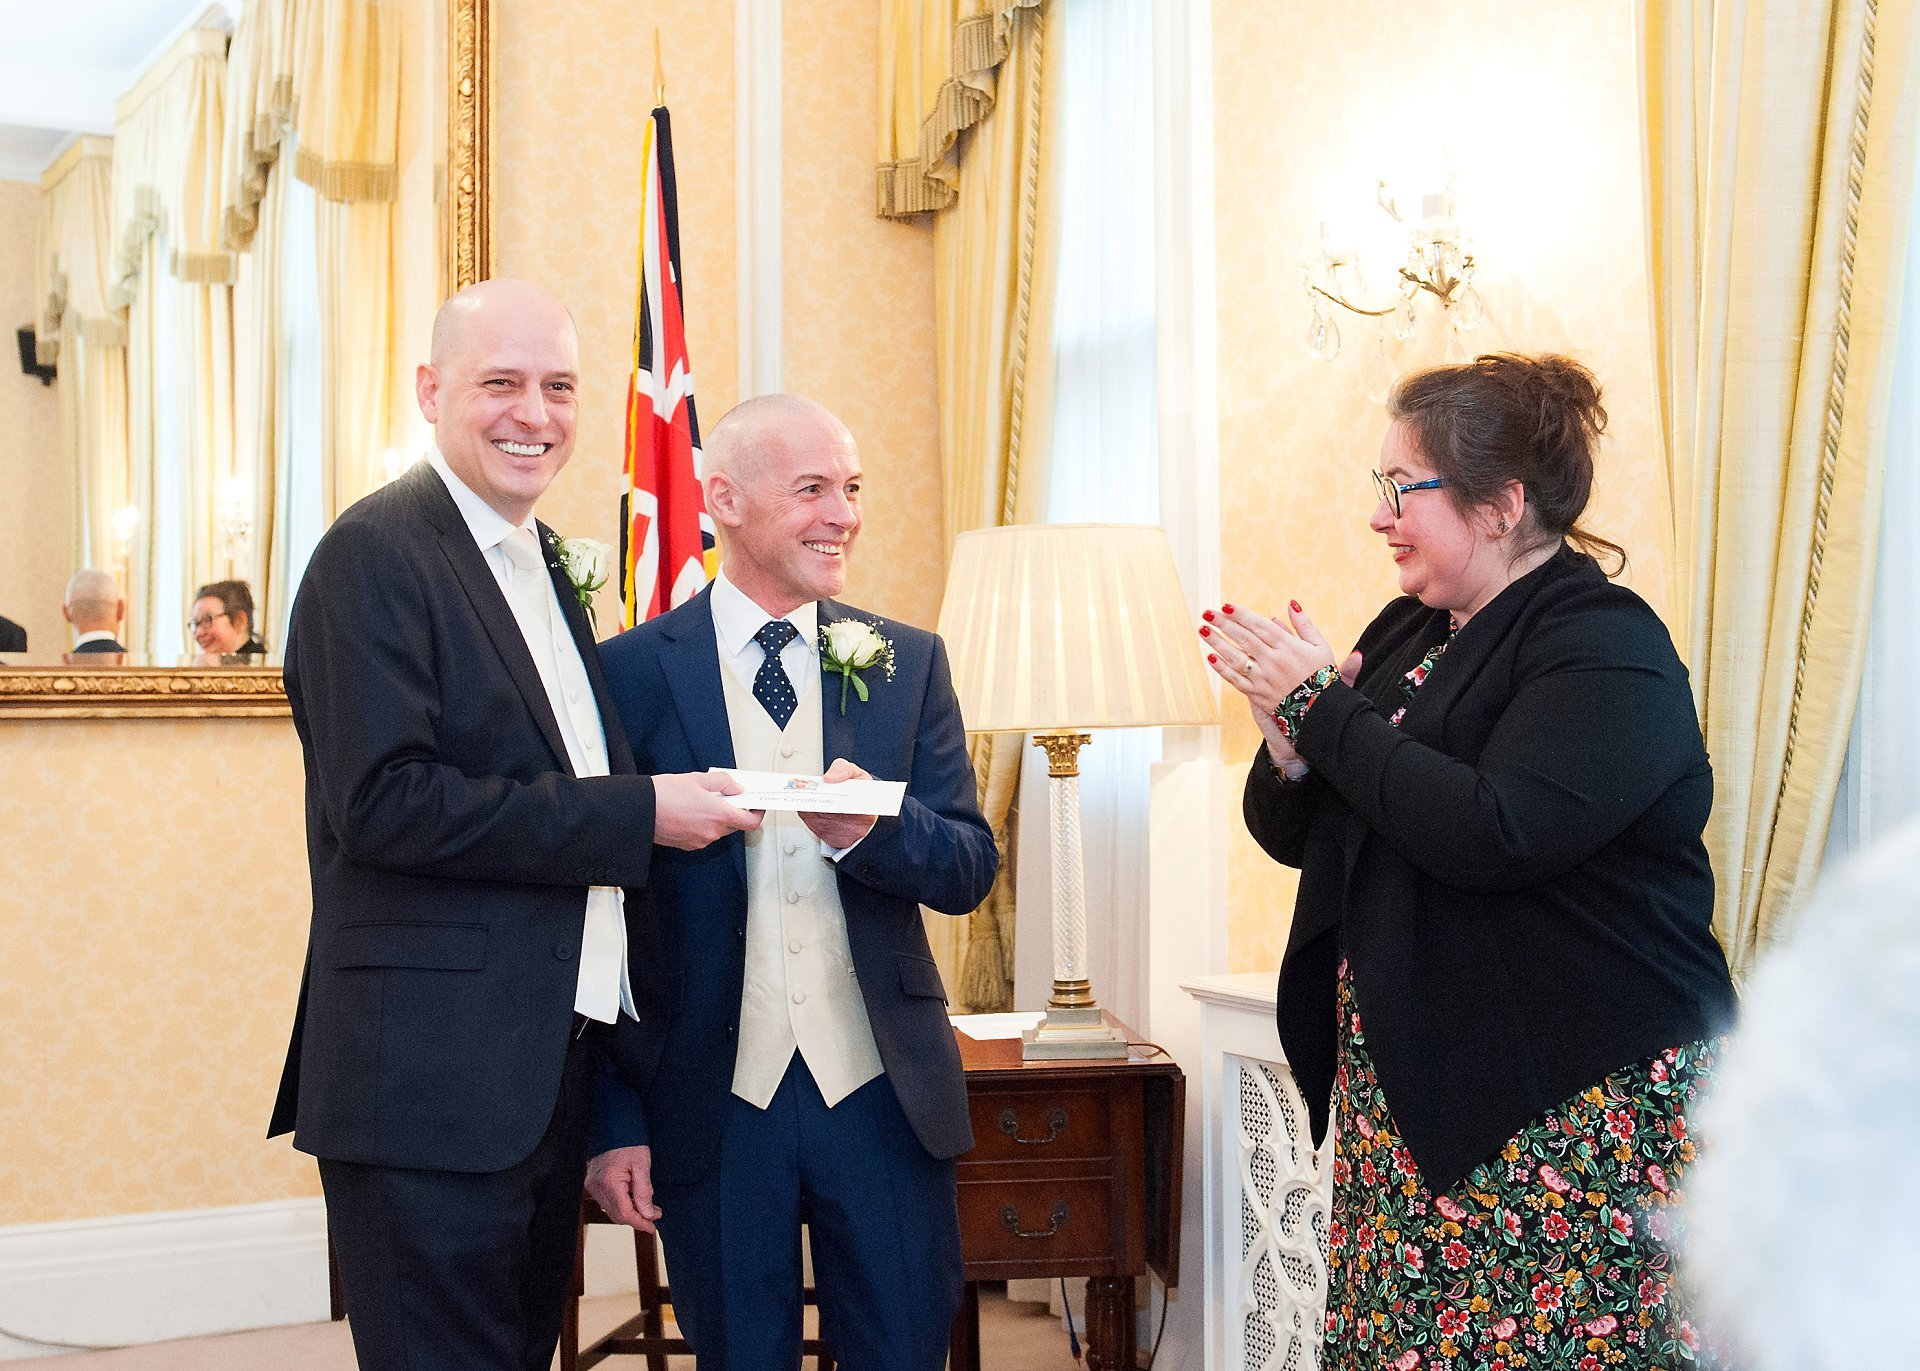 The Kensington and Chelsea Registrar congratulated teh happy couple and hands over their marriage license